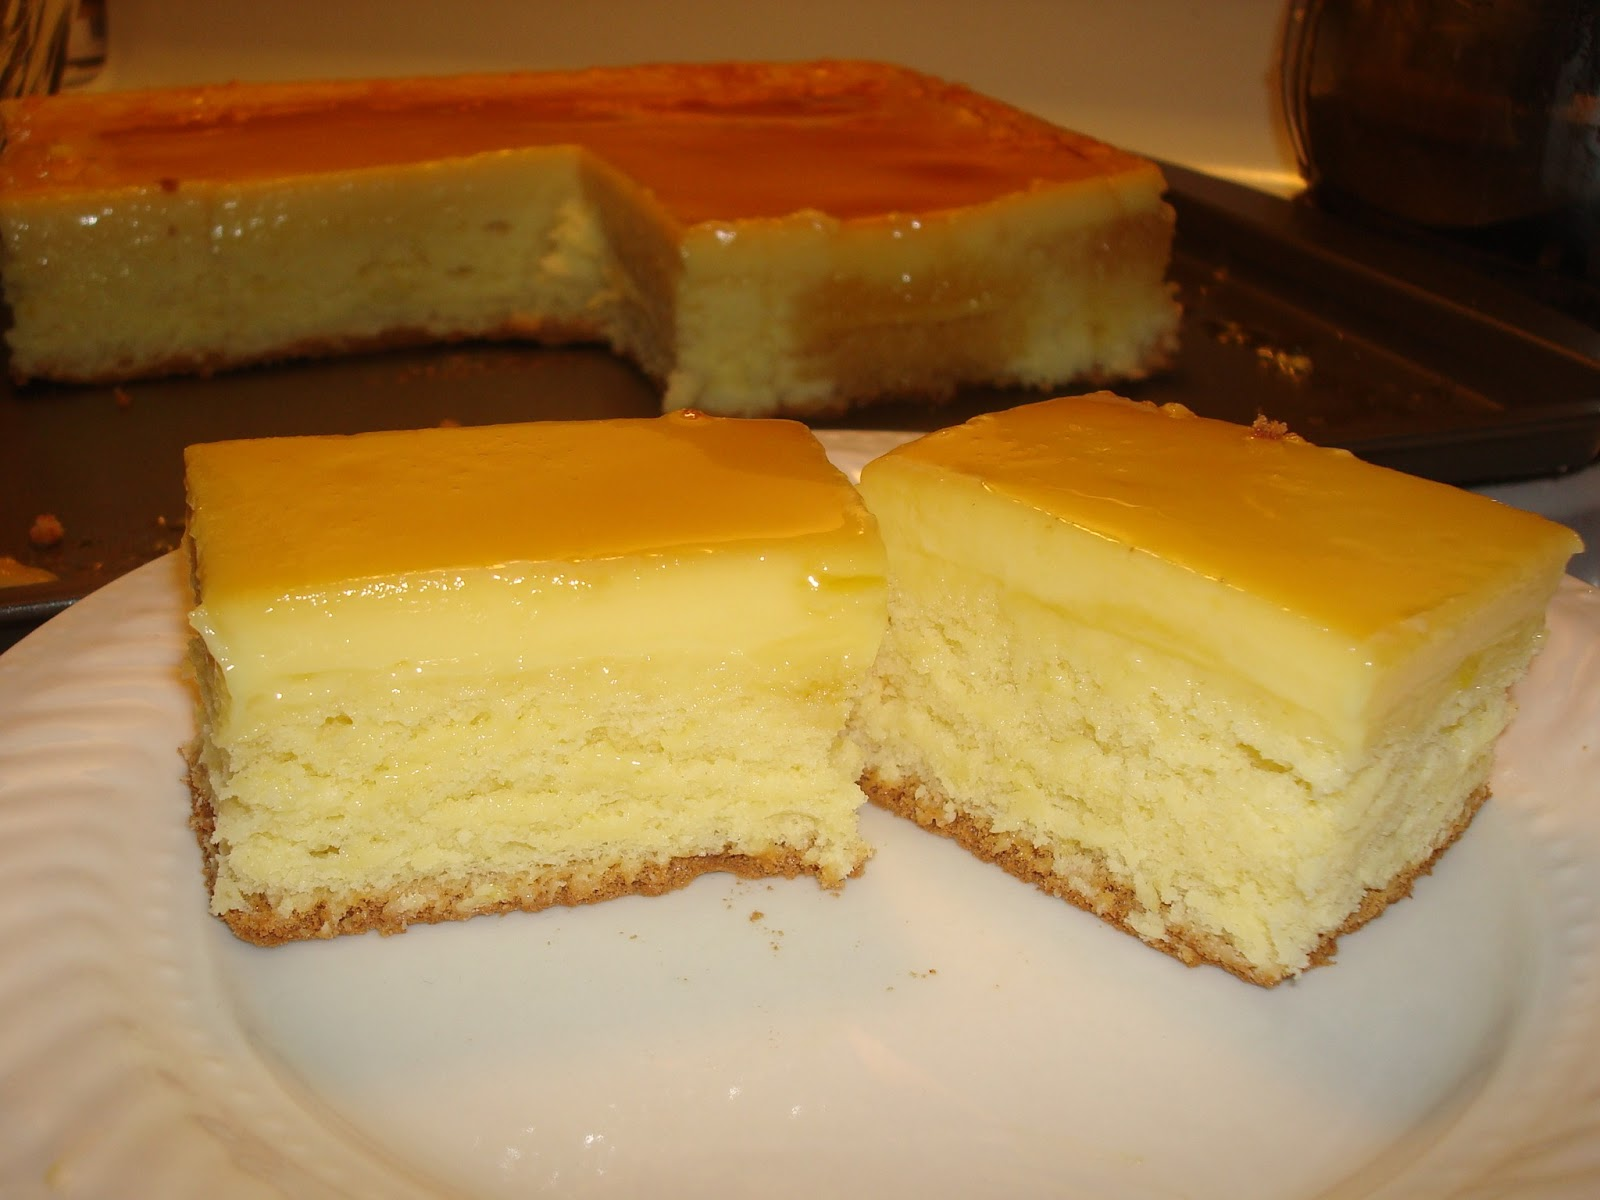 Filipino Cake Recipes With Pictures : Boys, Baking and Beyond: Custard Cake Filipino Style